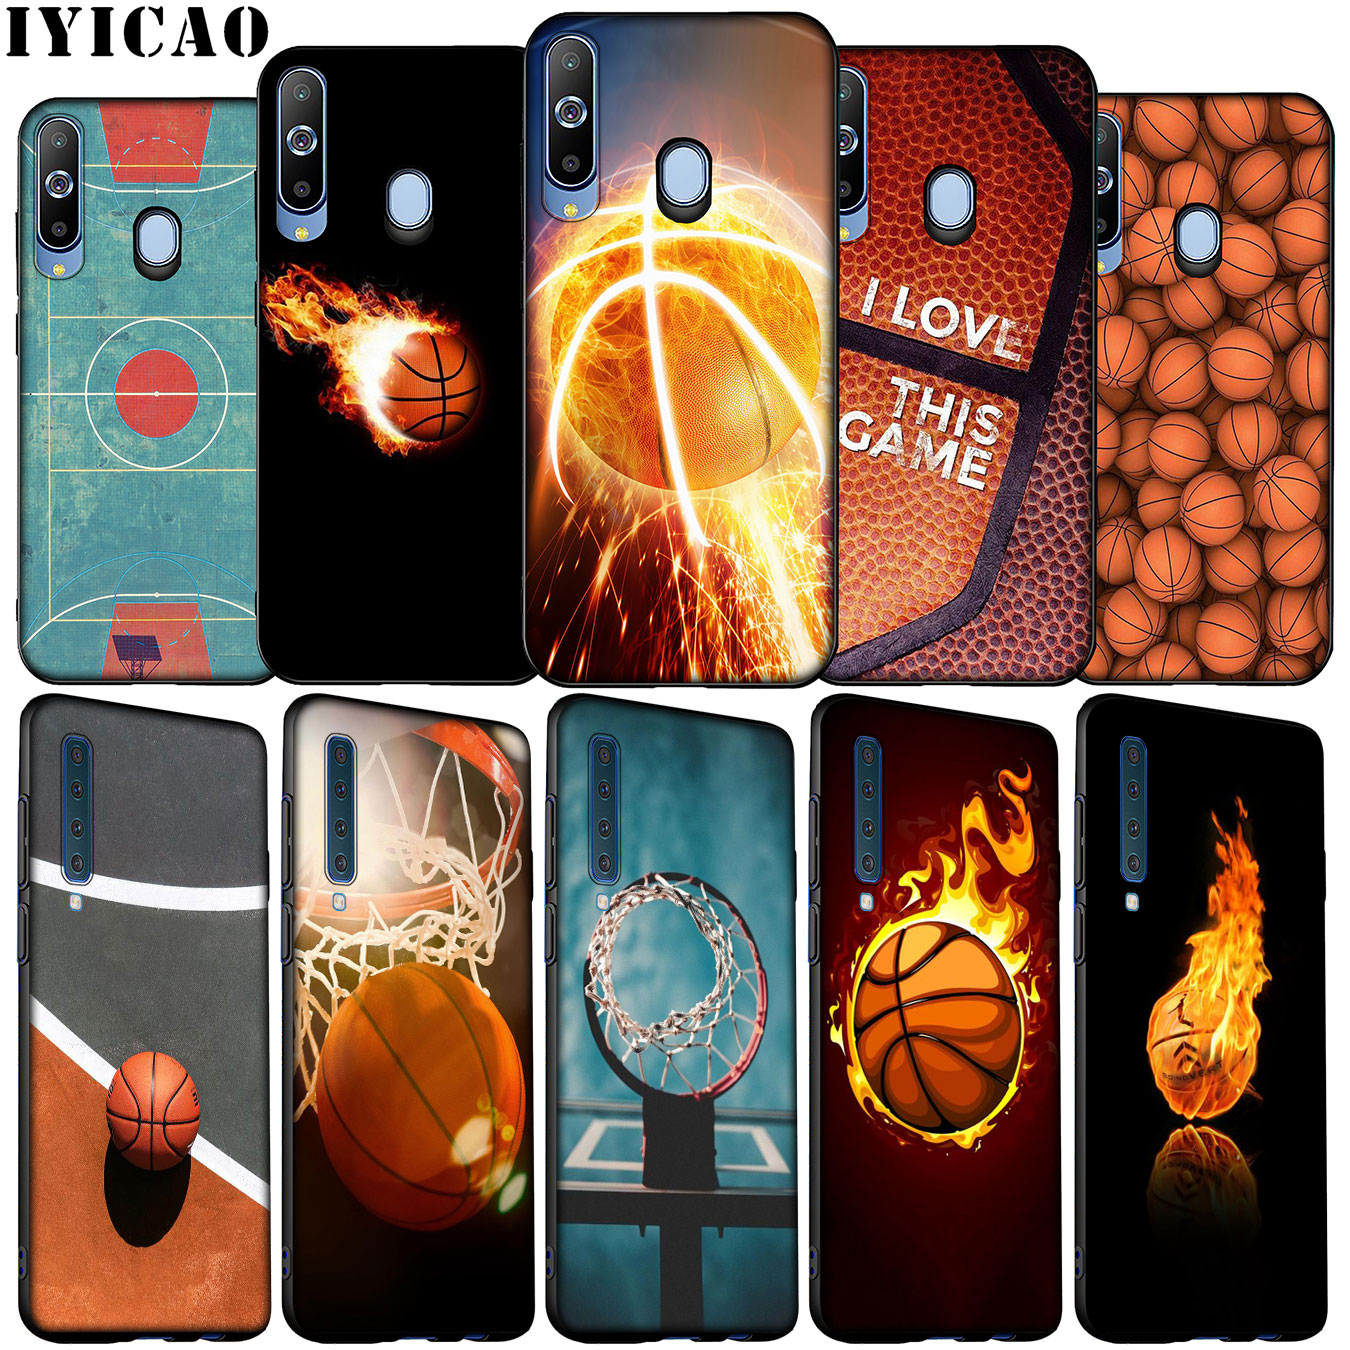 IYICAO Basketball <font><b>Art</b></font> Shoot Soft Silicone <font><b>Case</b></font> for <font><b>Samsung</b></font> <font><b>Galaxy</b></font> A70 A50 A60 A40 <font><b>A30</b></font> A20 A10 M10 M20 M30 M40 A20E Black Cover image